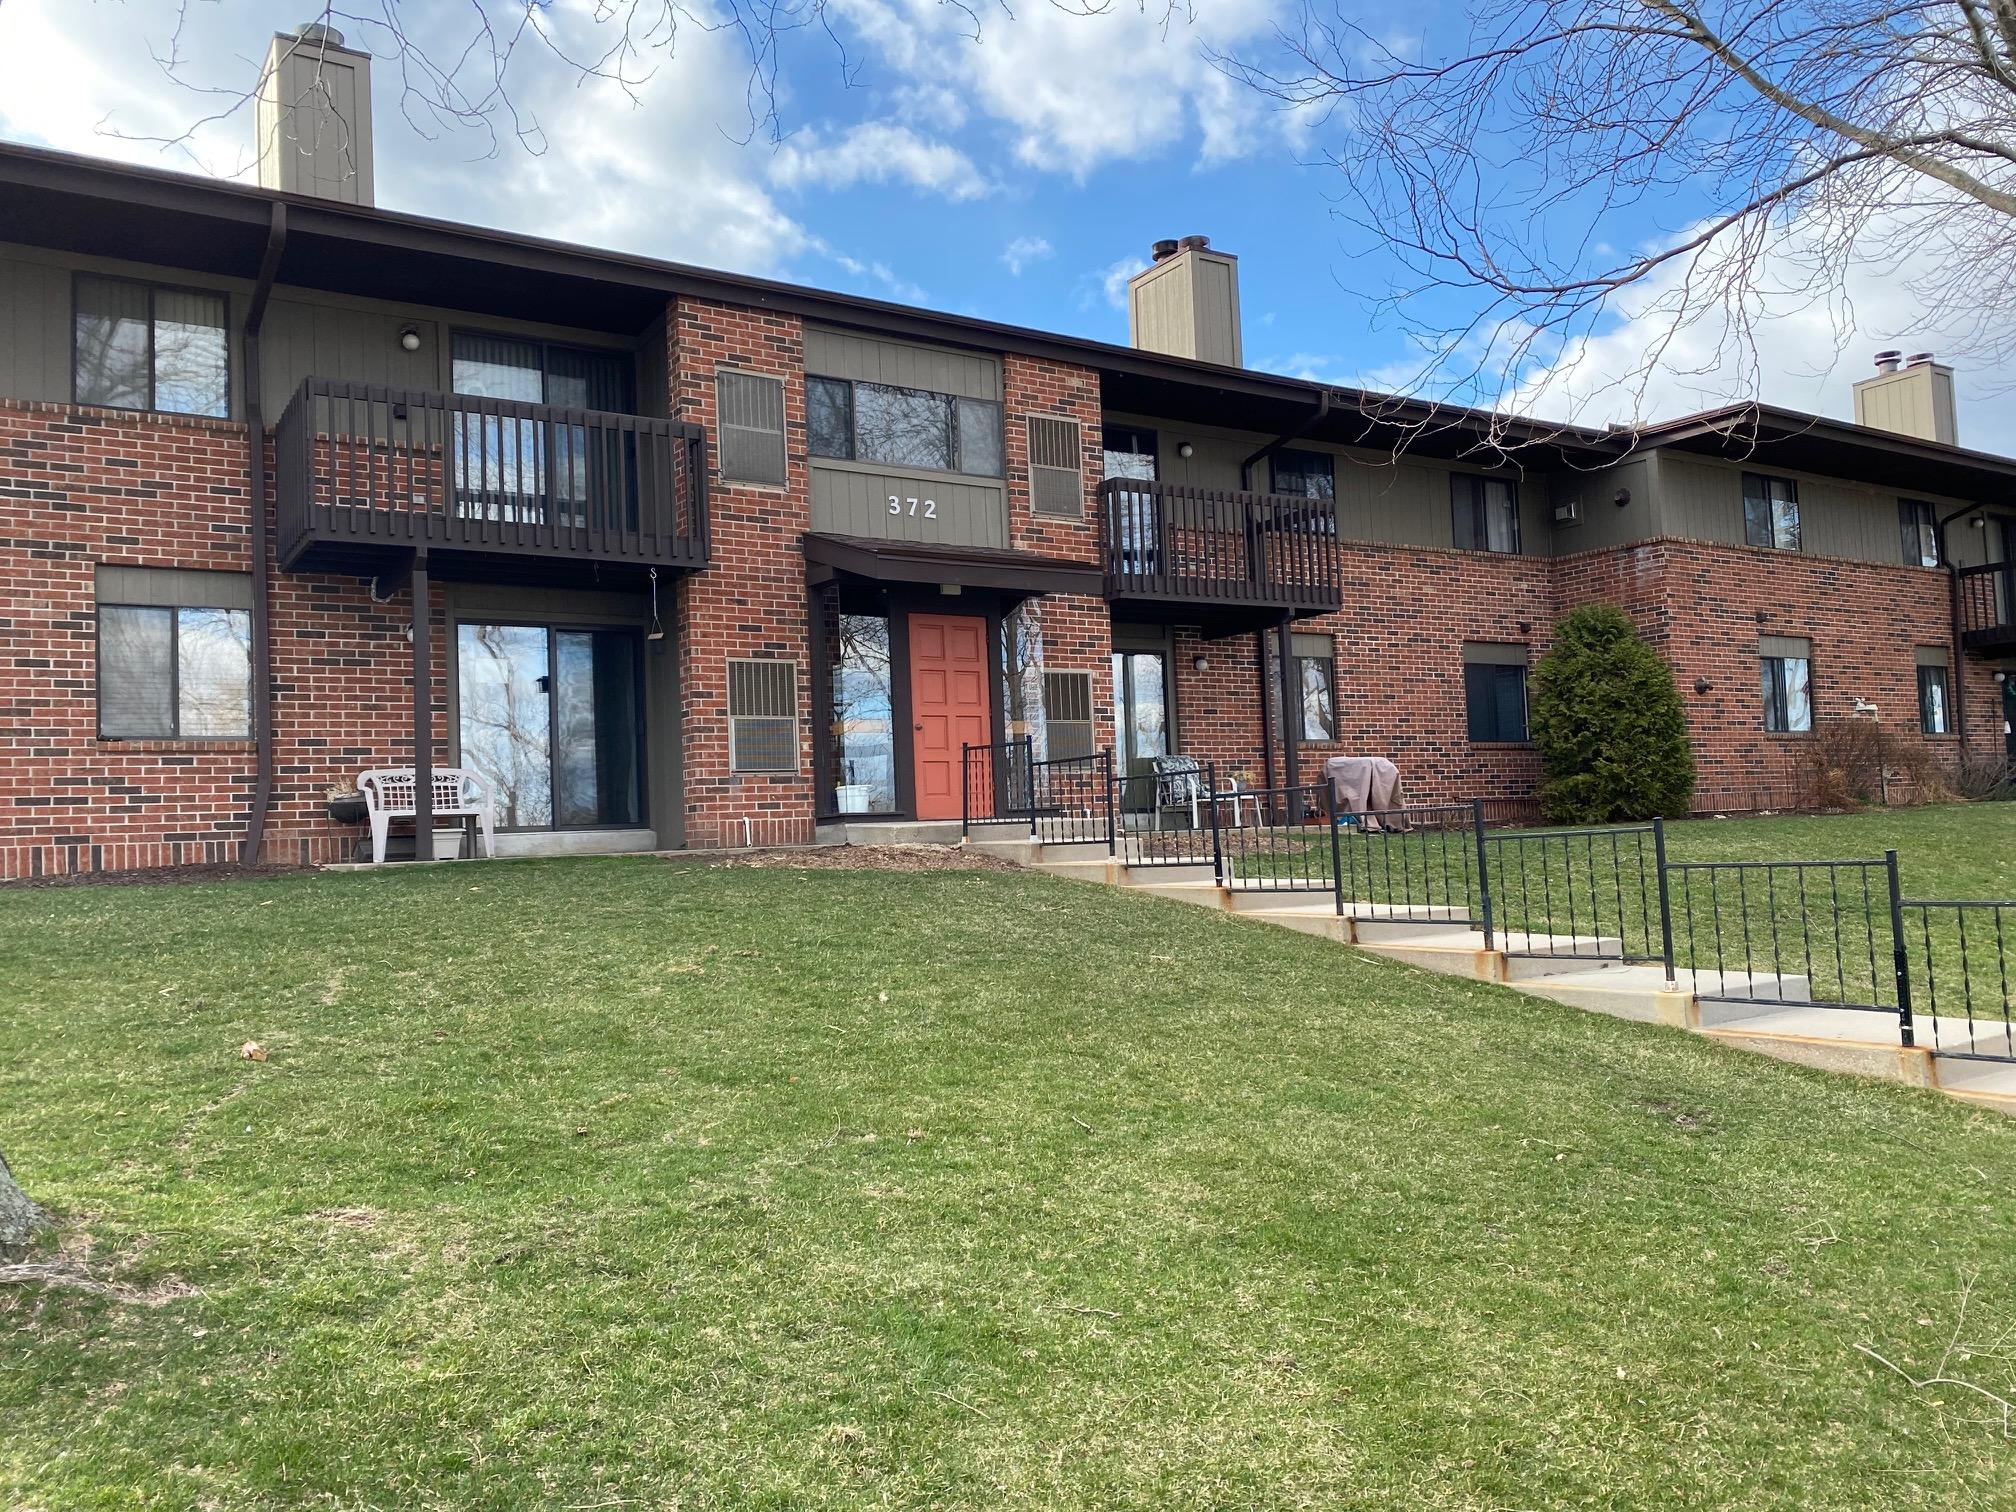 372 Park Hill Dr, Pewaukee, Wisconsin 53072, 3 Bedrooms Bedrooms, ,2 BathroomsBathrooms,Condominiums,For Sale,Park Hill Dr,2,1733047